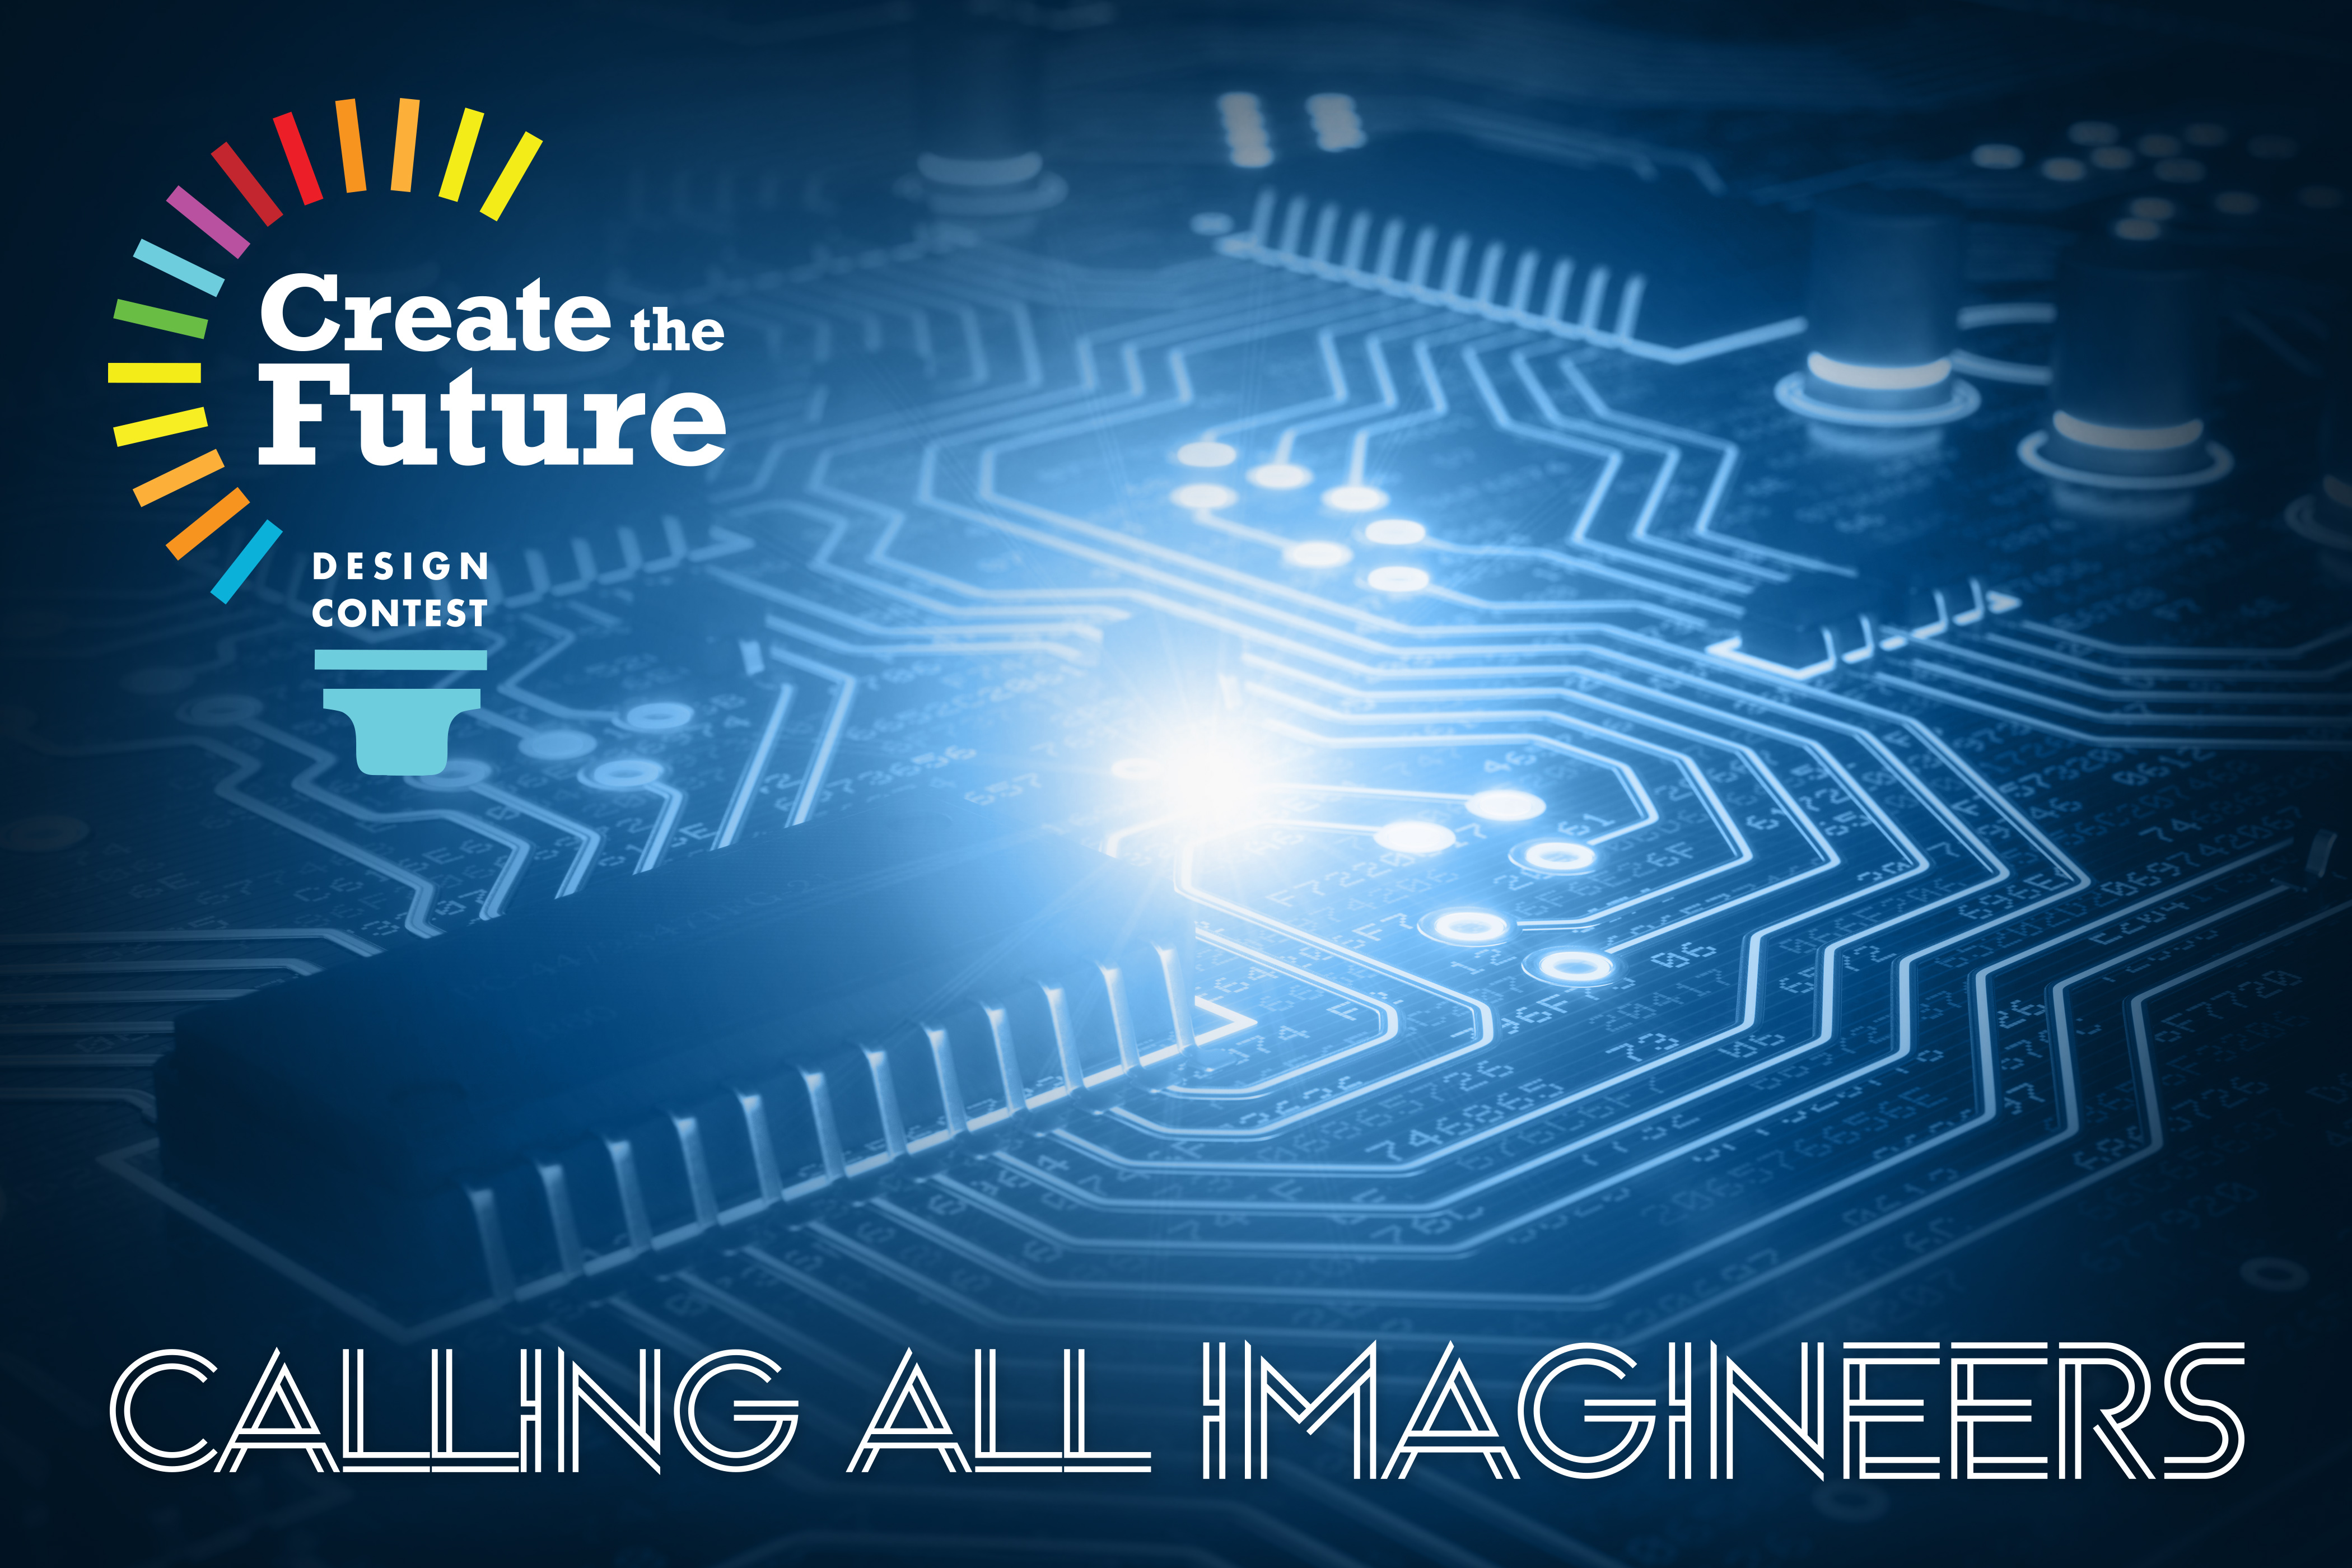 Mouser Praises Winners of Create the Future Design Contest